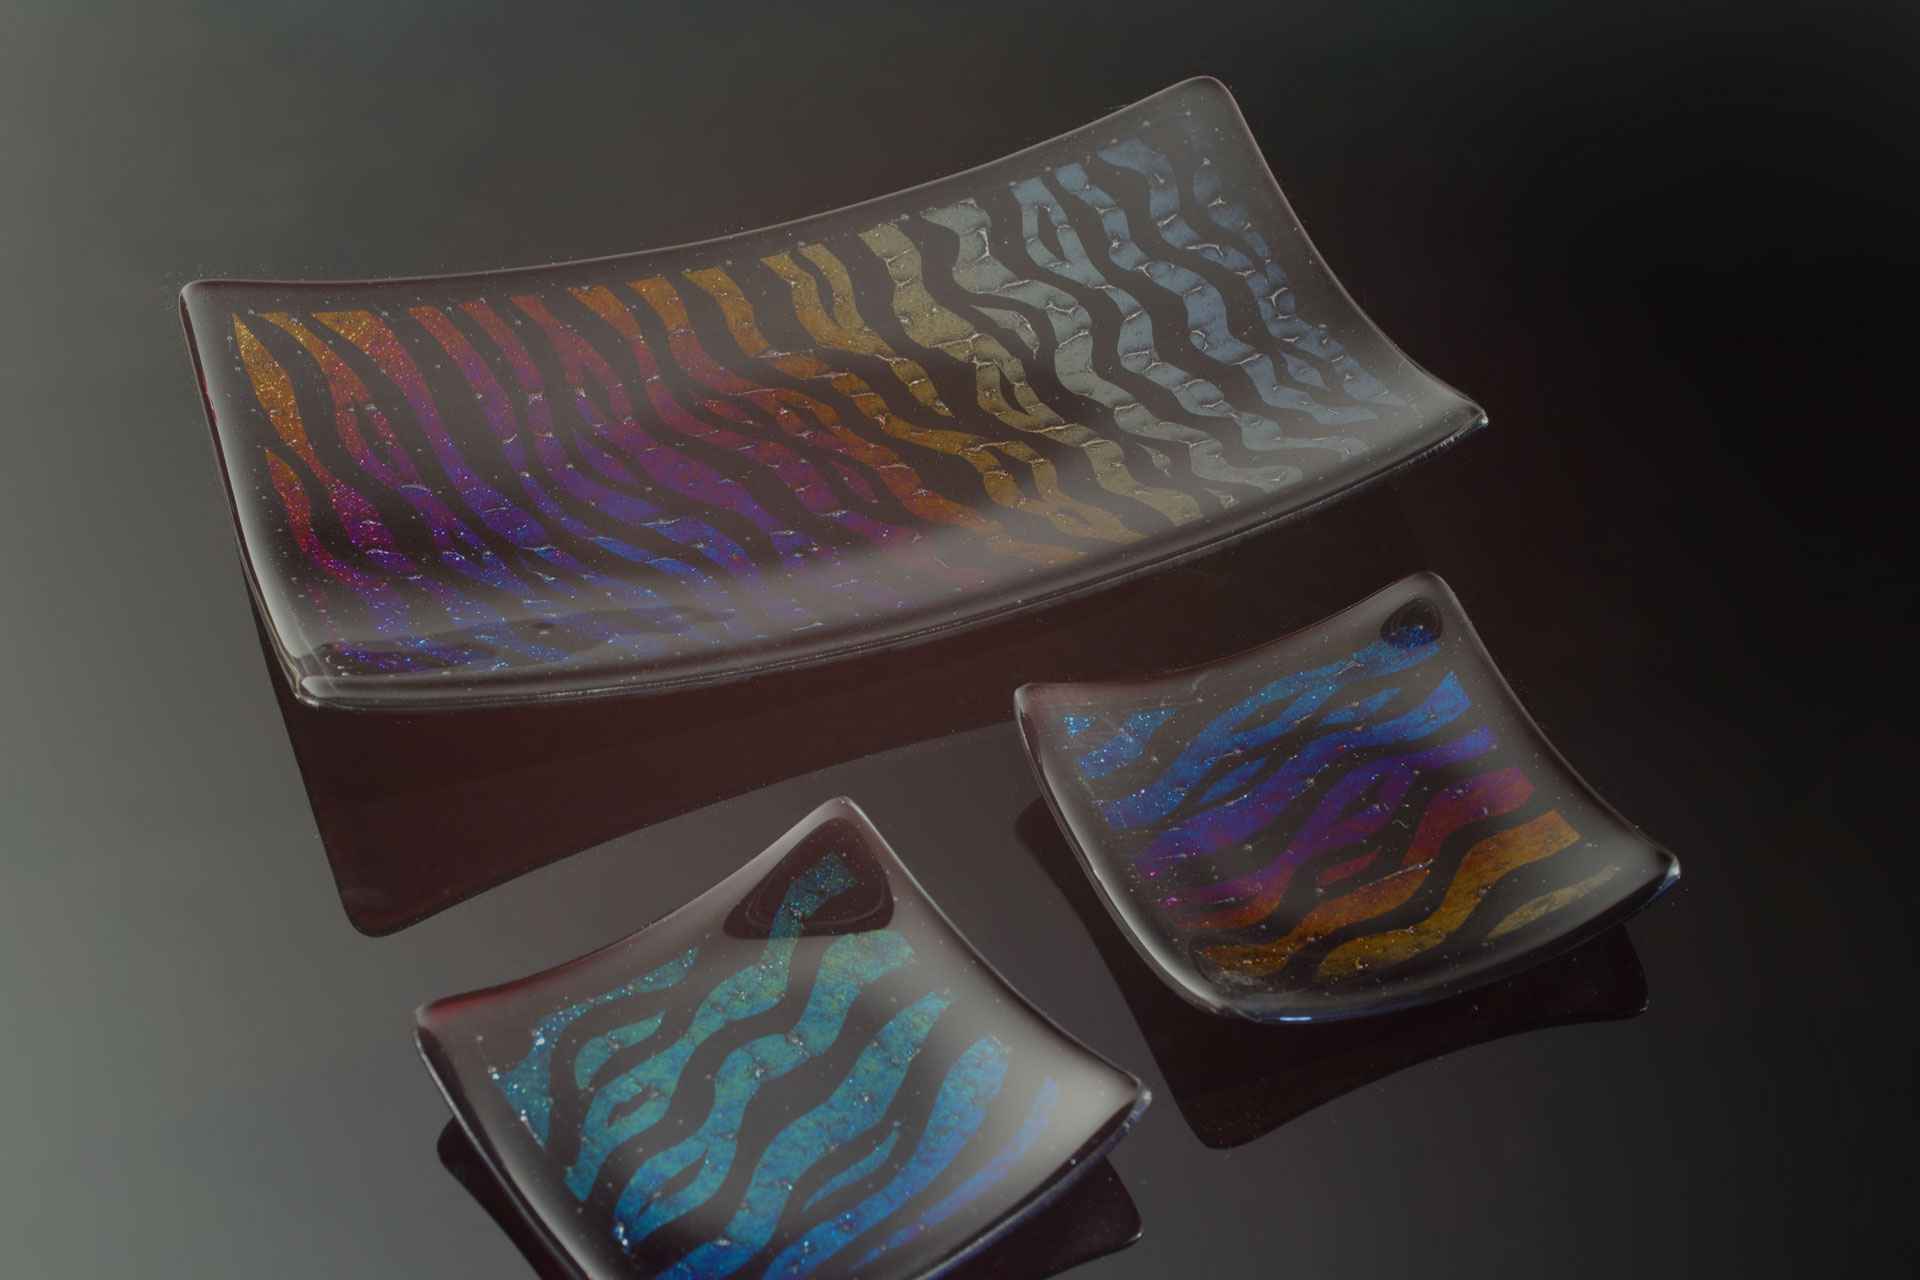 This fused glass platter and small glass dishes are an example of what you can make using glass fusing techniques.